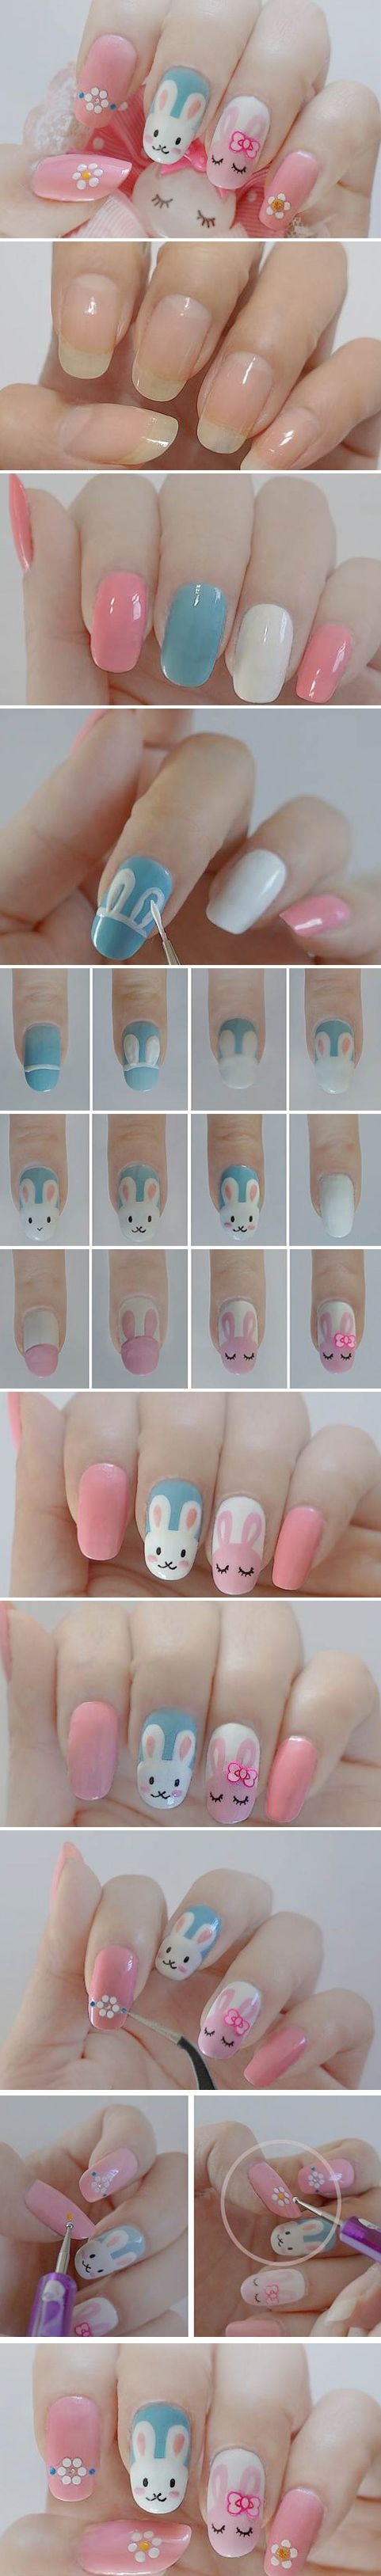 Adorable Bunnies Nail Art Tutorial in Pictures